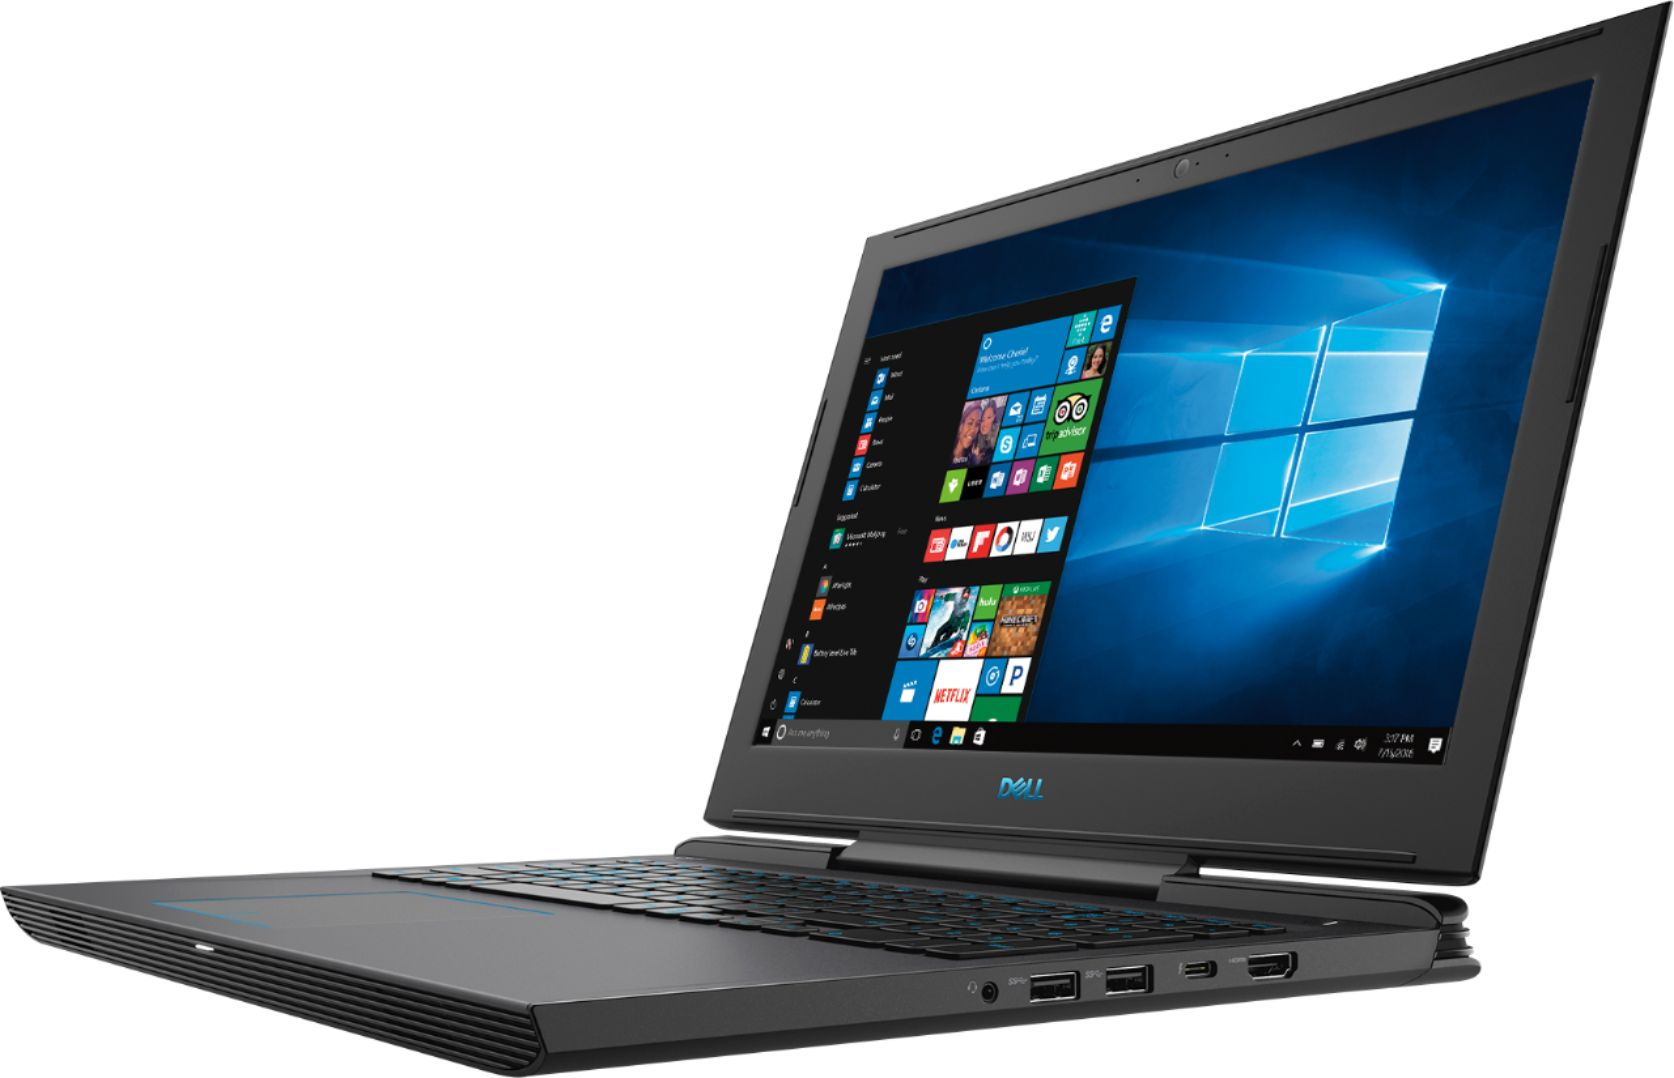 "Left Zoom. Dell - Geek Squad Certified Refurbished 15.6"" Gaming Laptop - Intel Core i7 - 8GB Memory - NVIDIA GeForce GTX 1060 - 256GB SSD - Licorice Black."